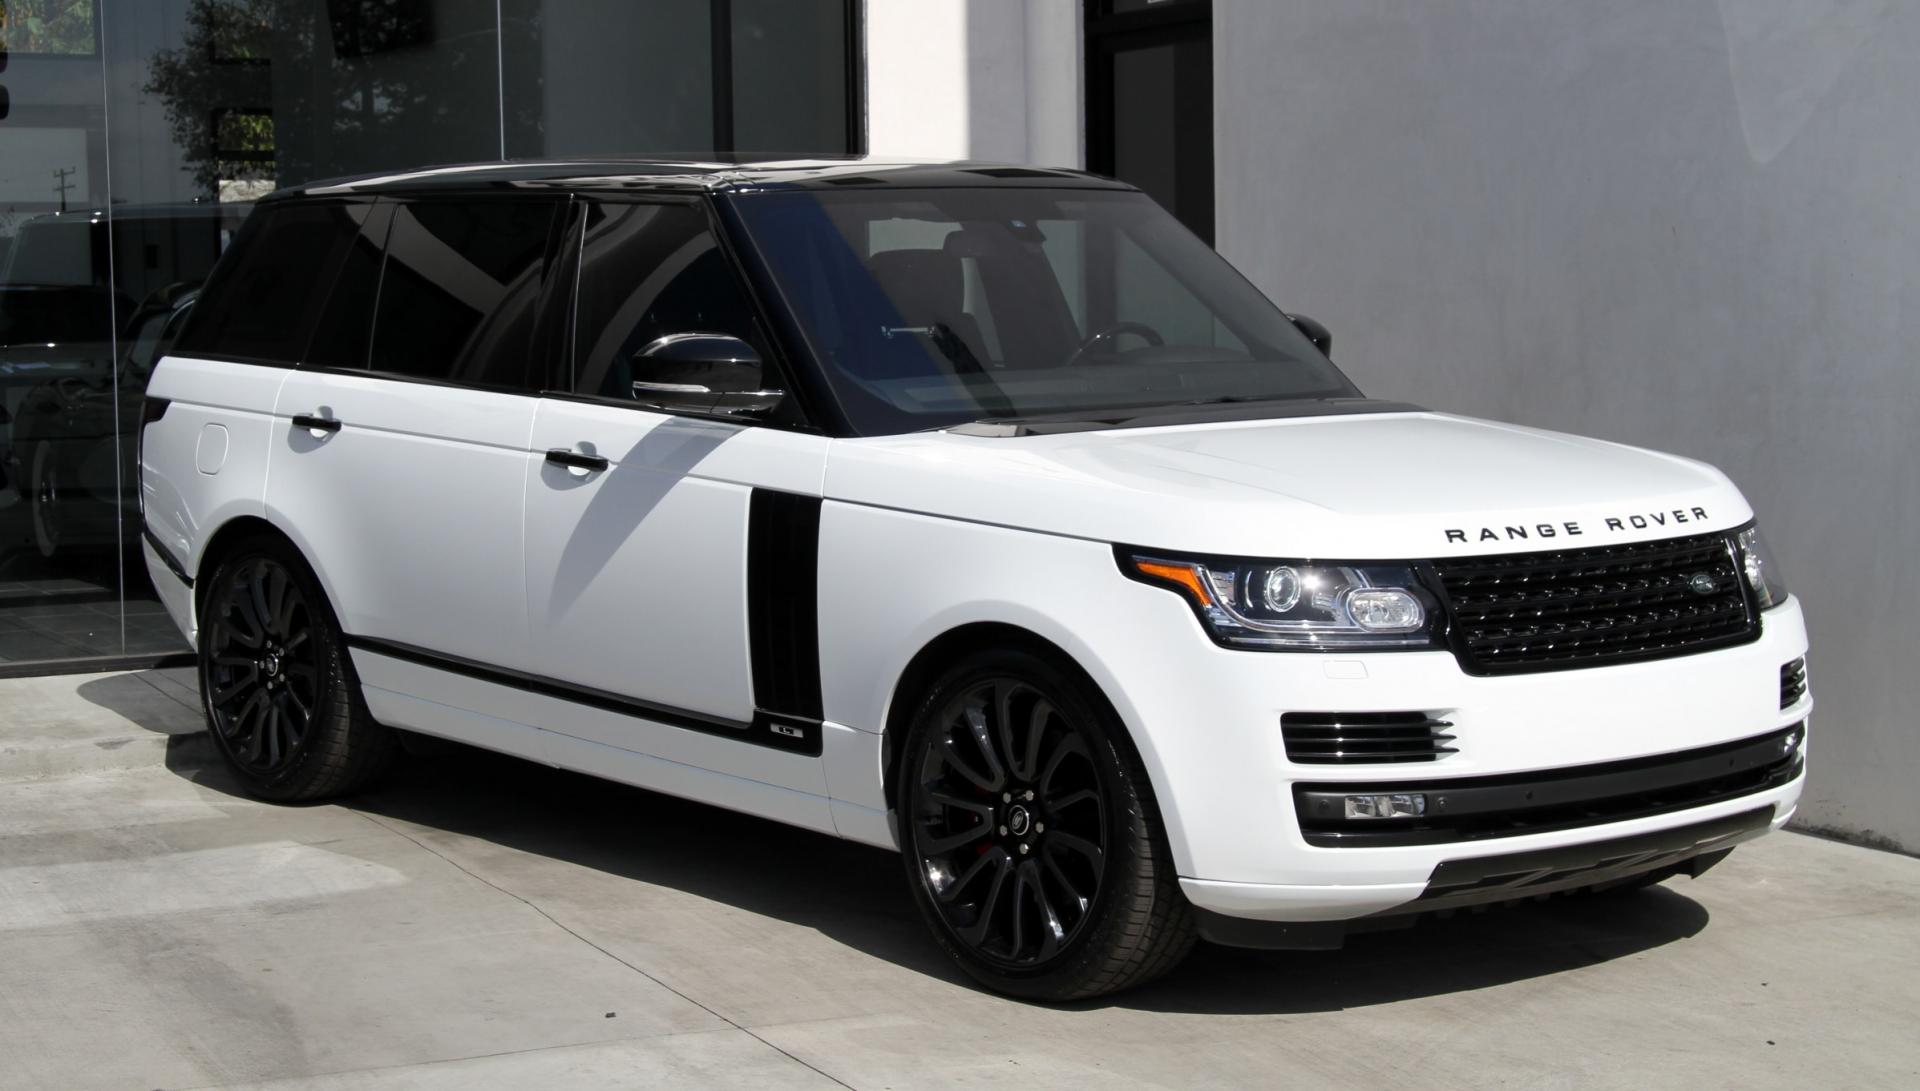 2015 land rover range rover supercharged long wheel base stock 6014 for sale near - Land rover garage near me ...